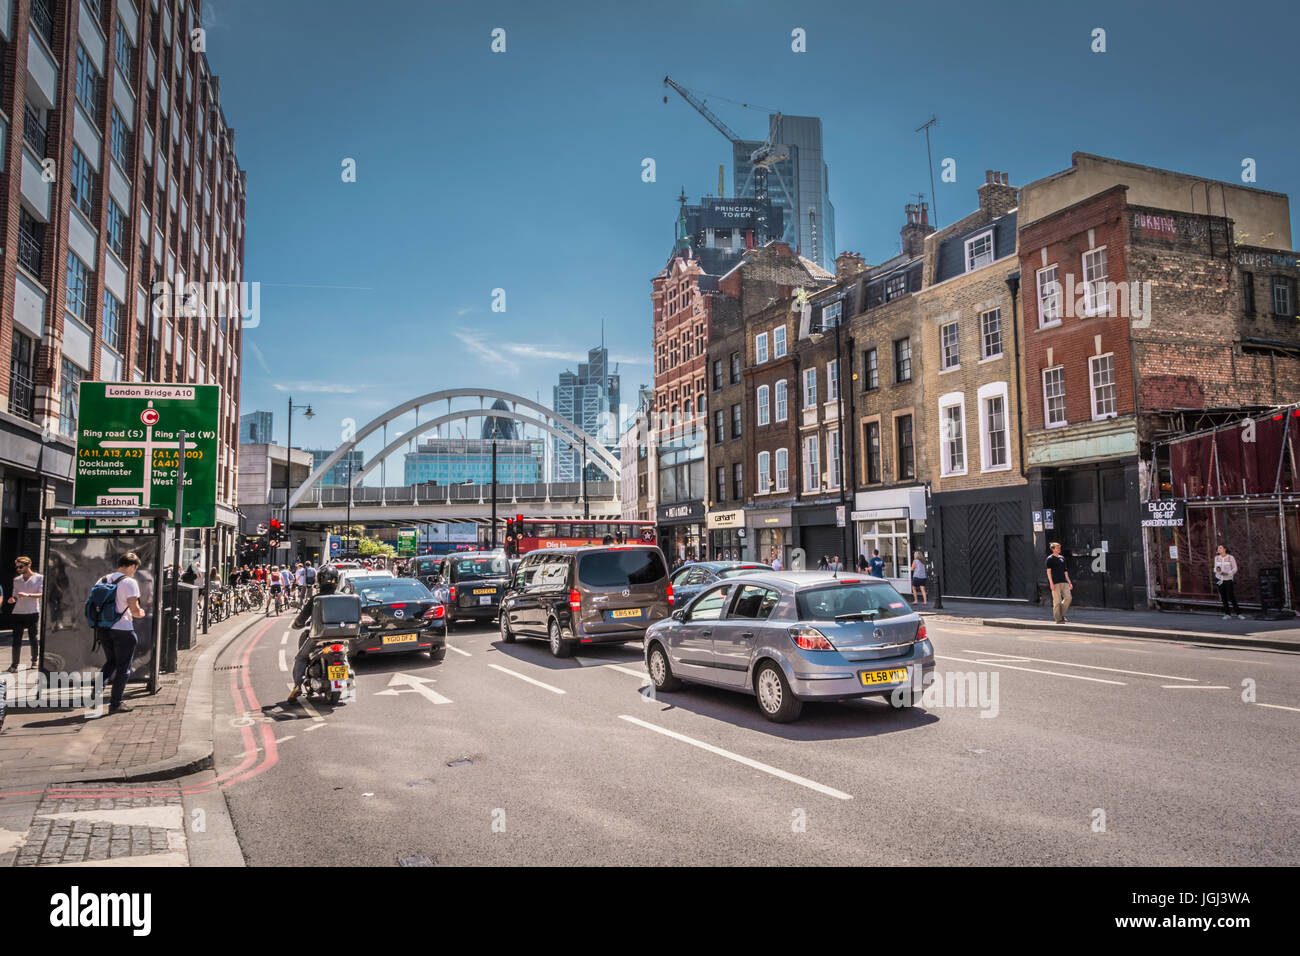 A busy and congested Shoreditch High Street, London, UK - Stock Image